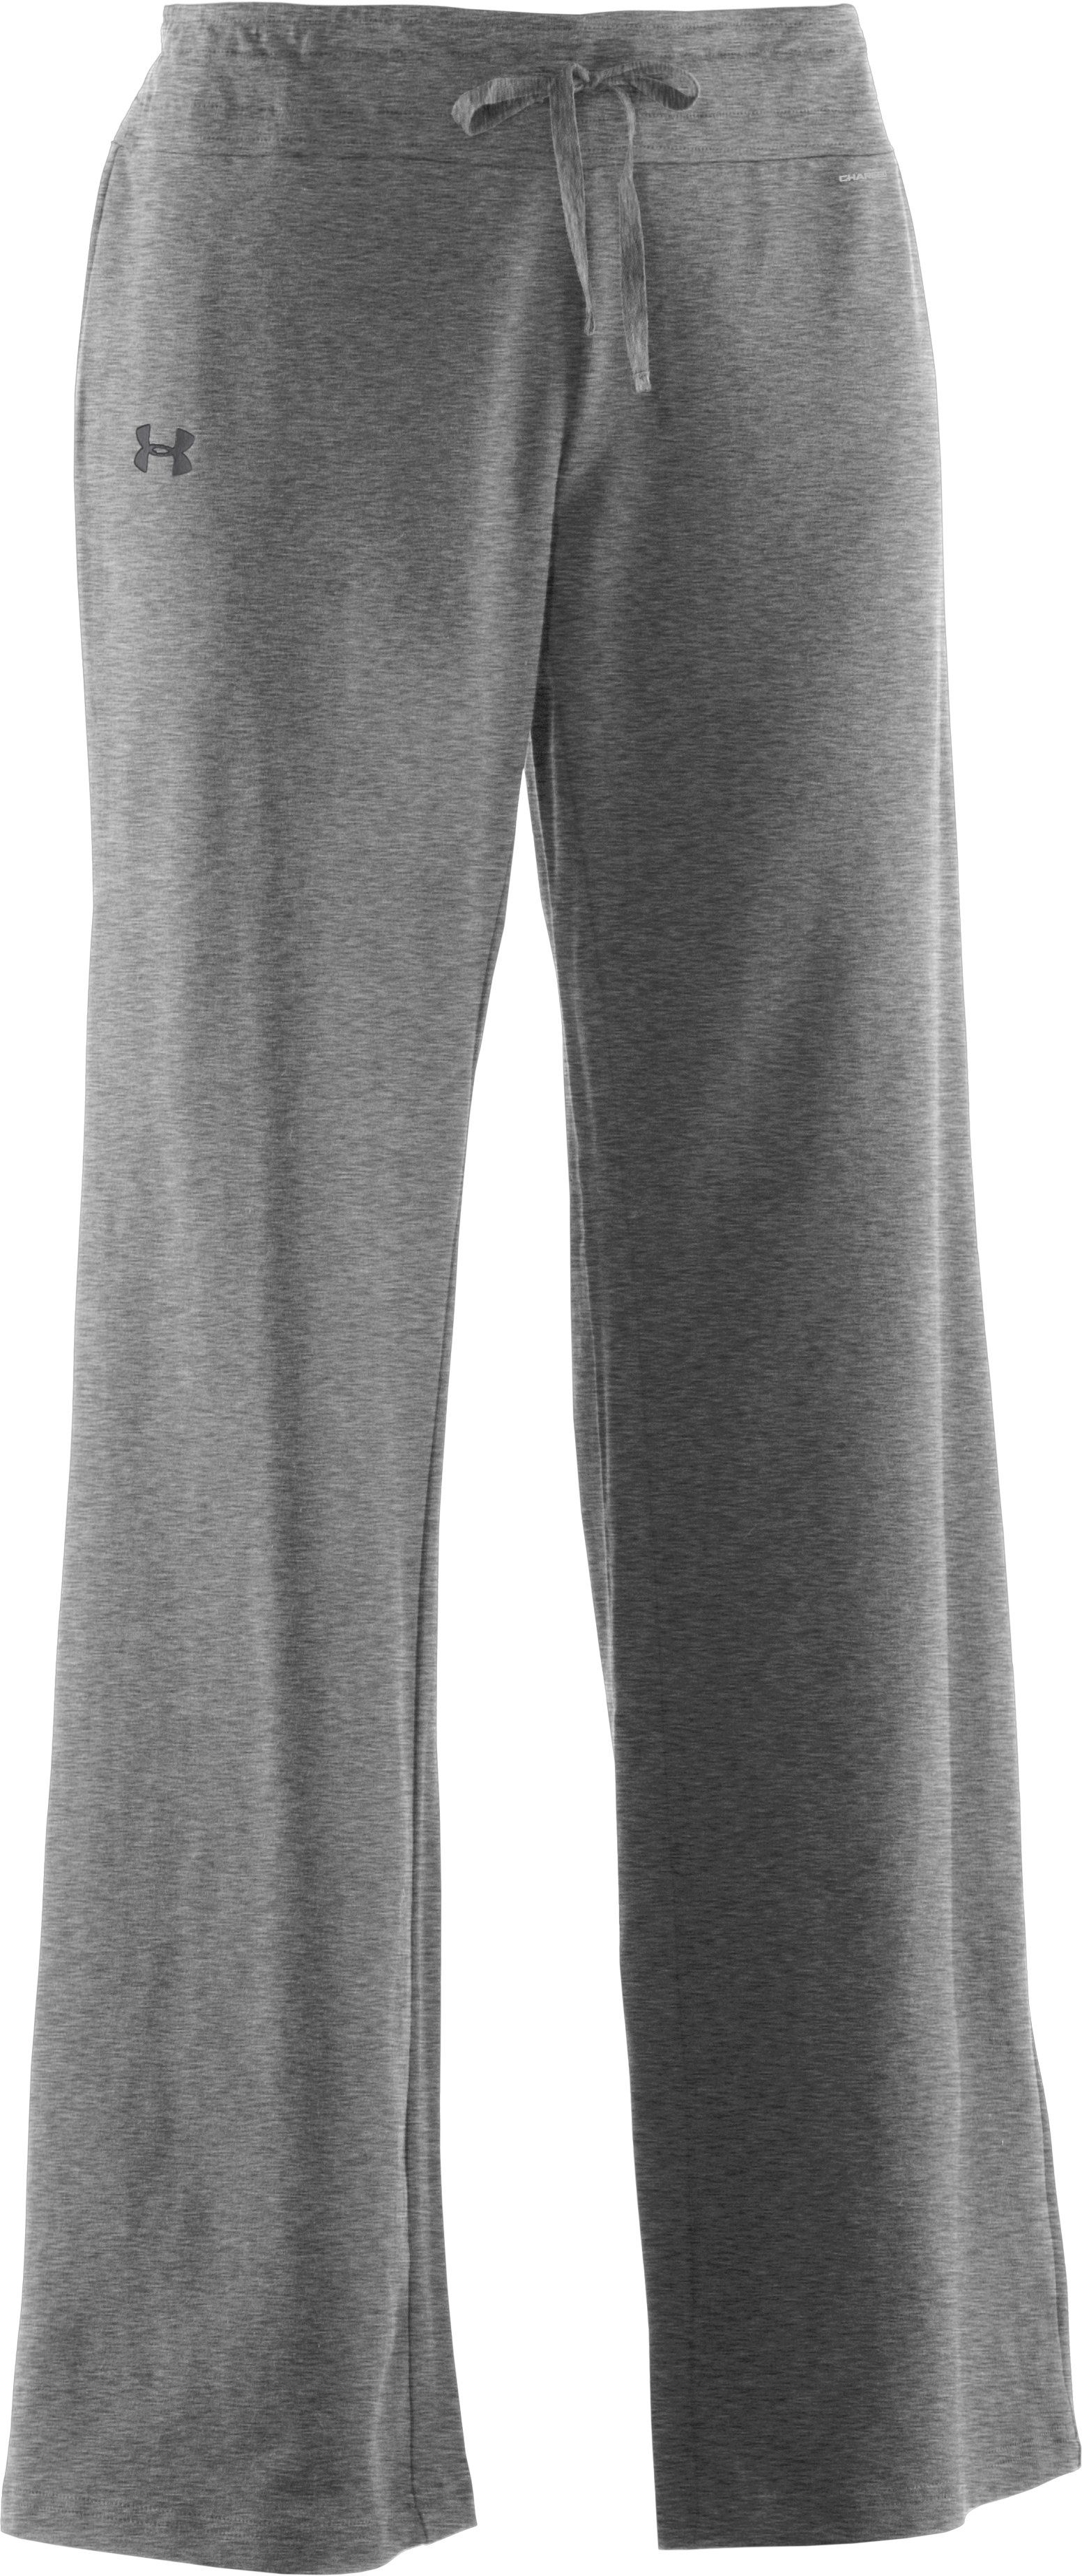 Women's Charged Cotton® Pant, True Gray Heather, undefined